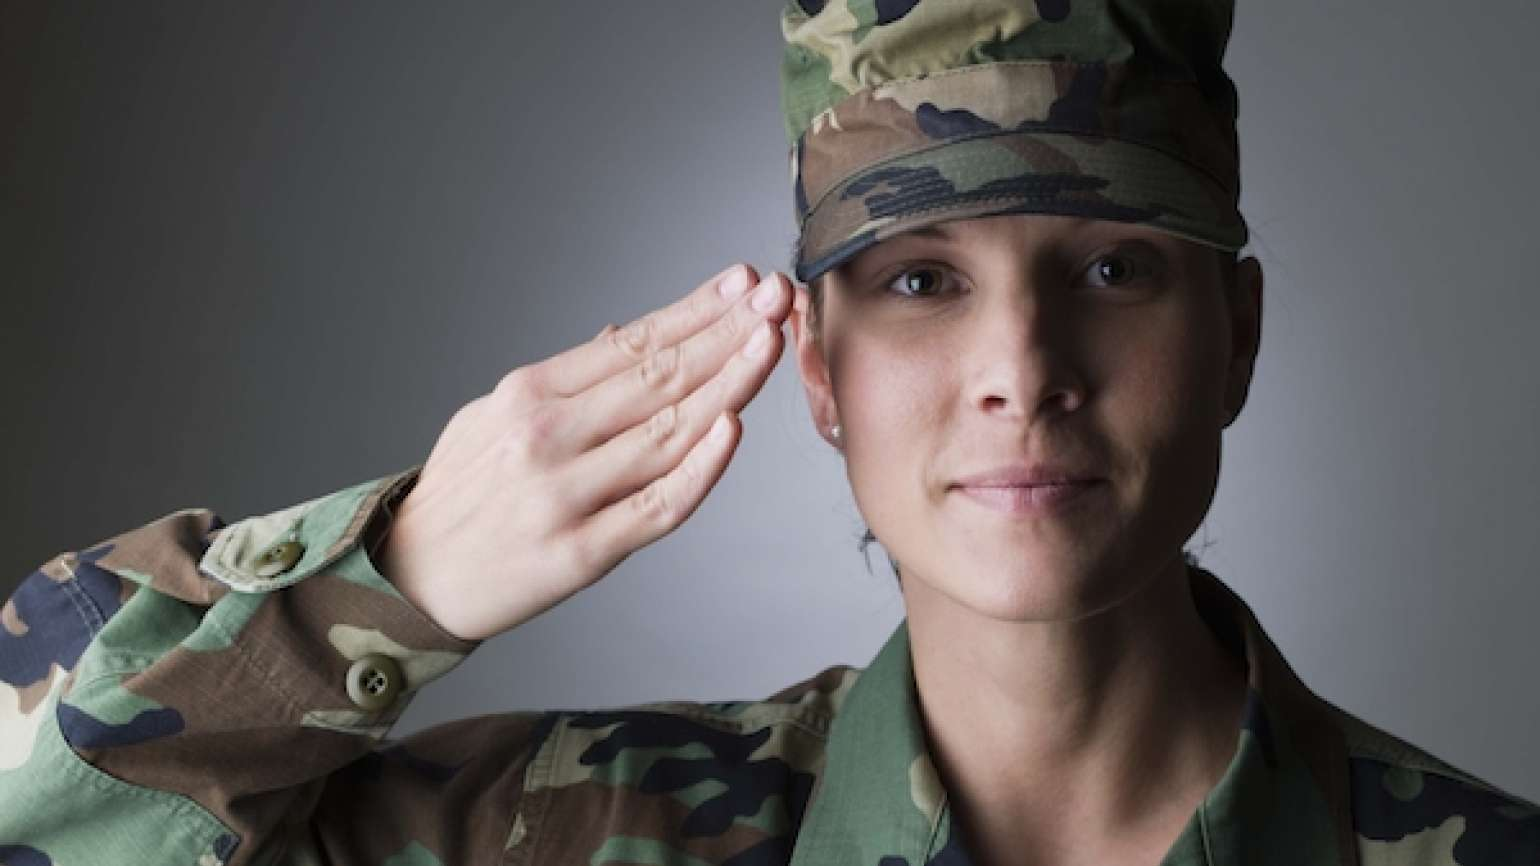 31 Bible verses for those who serve in the military